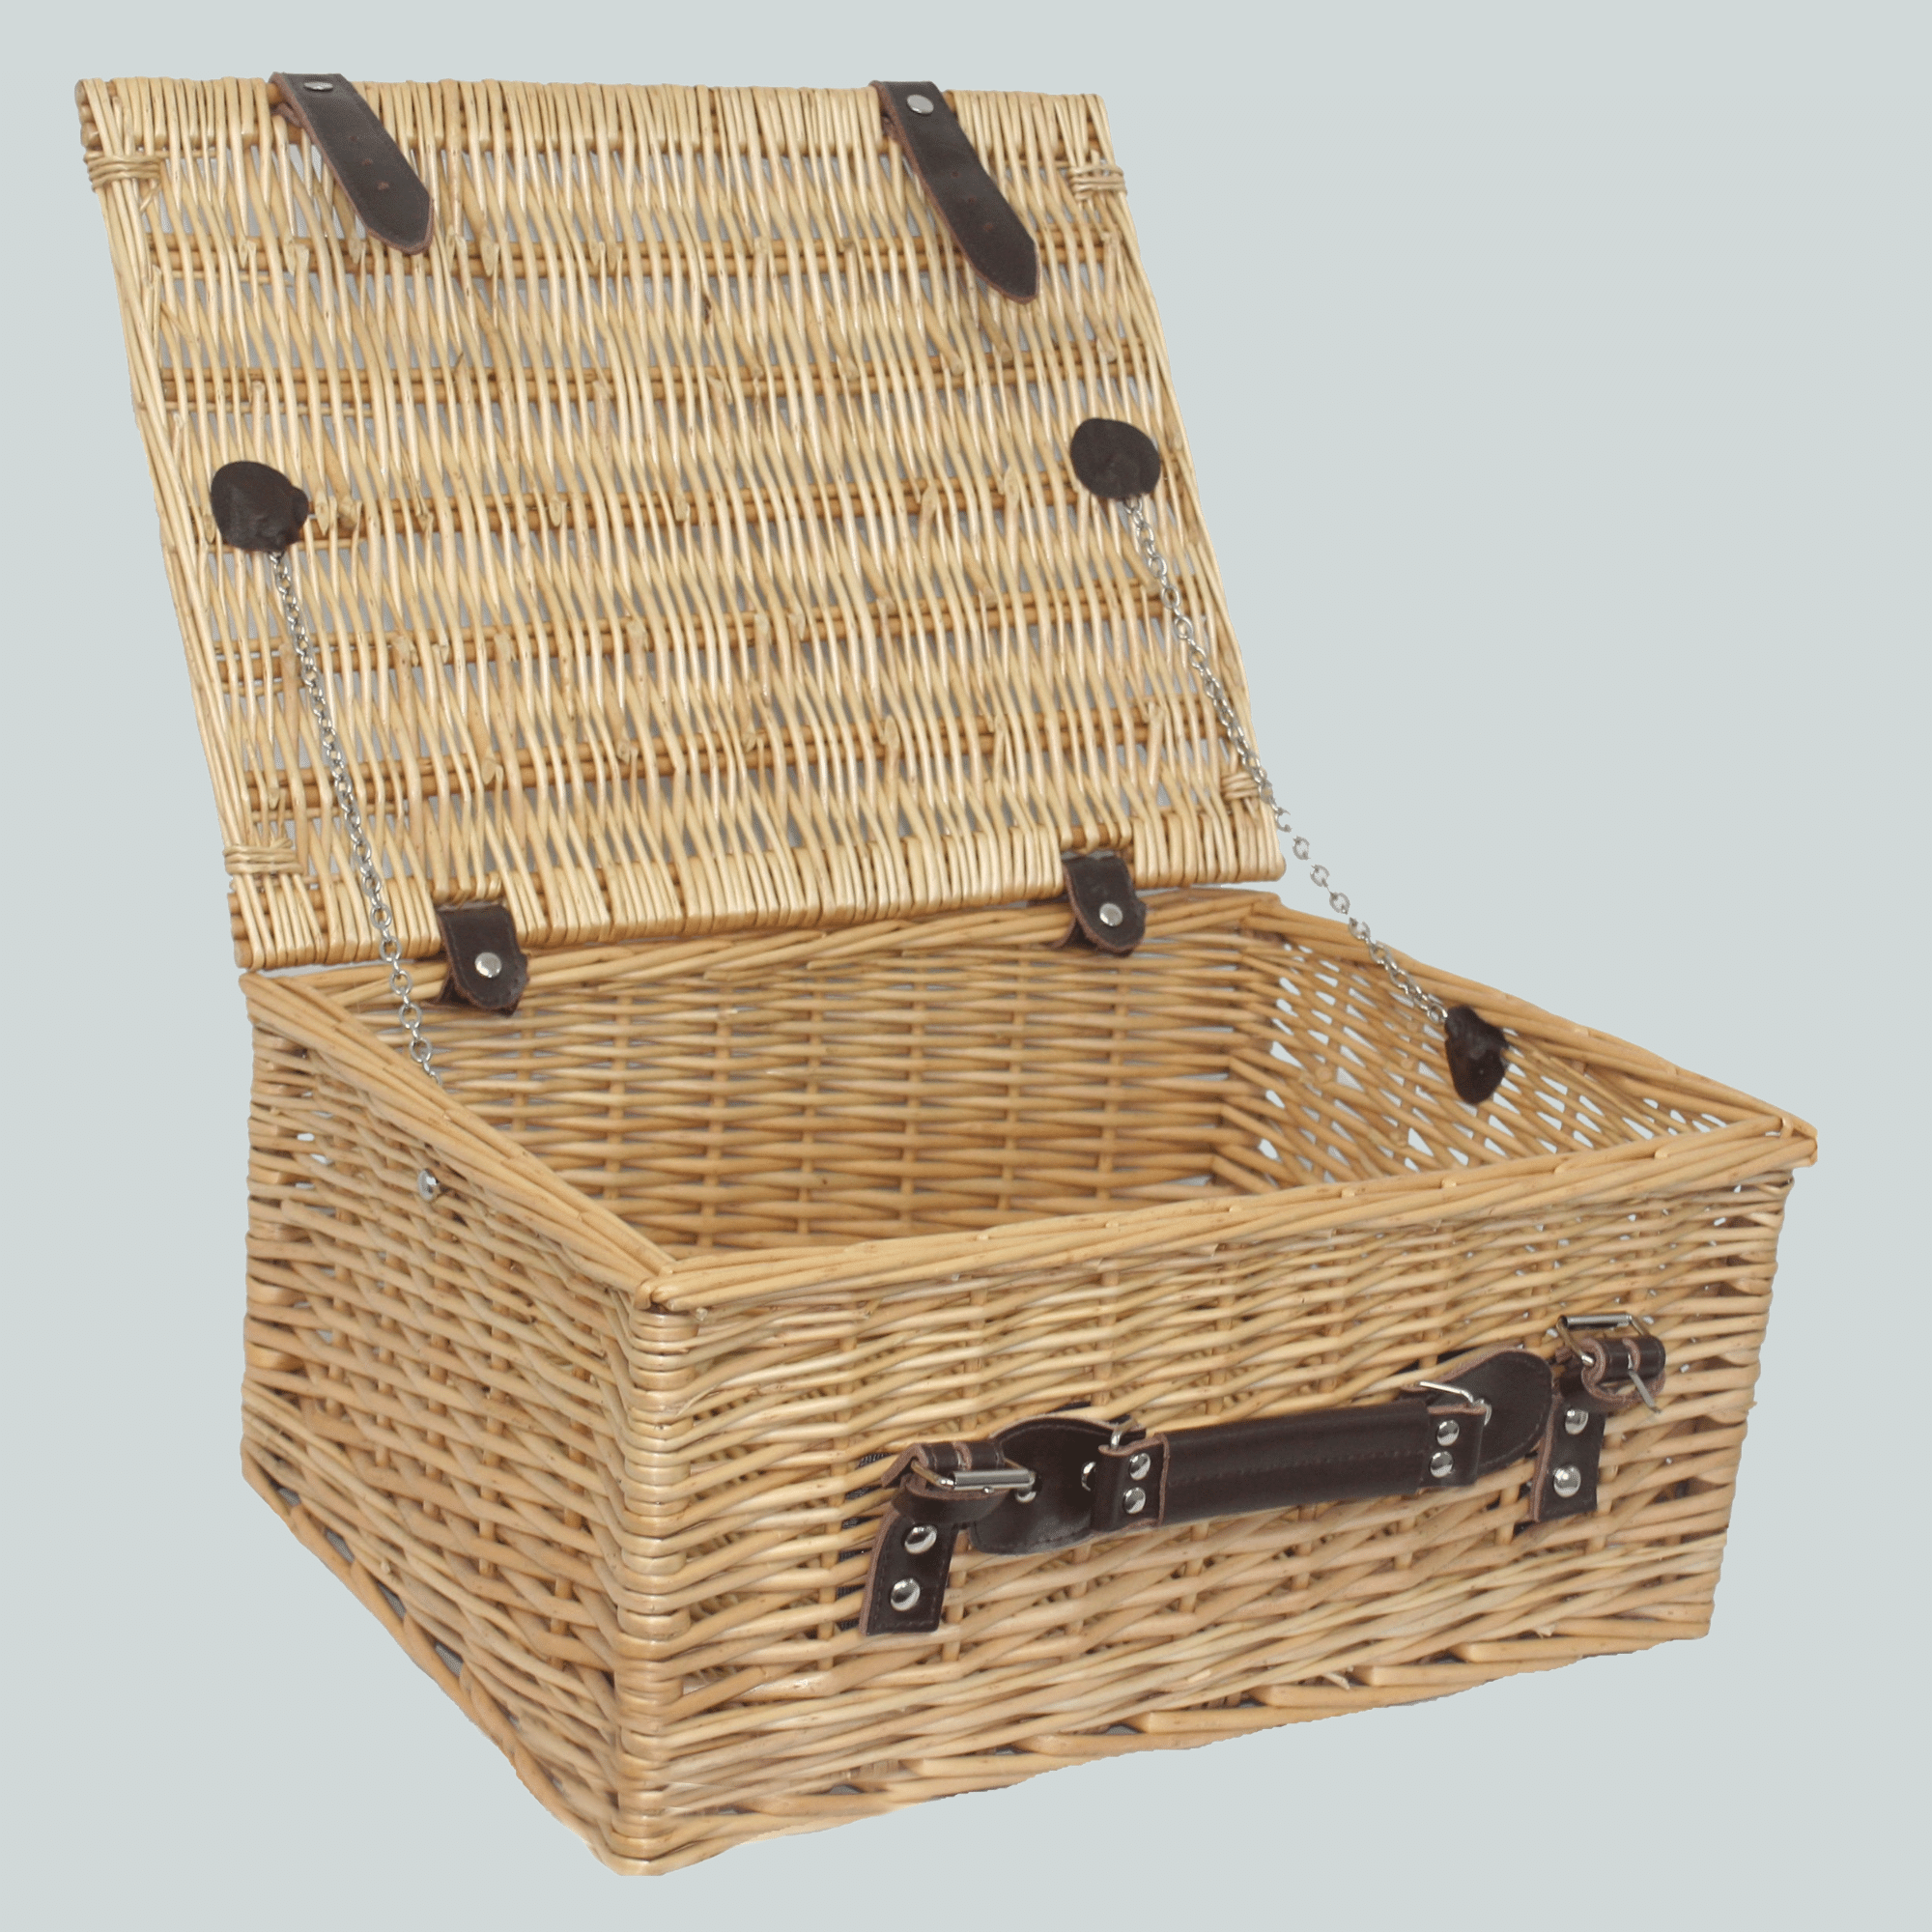 (6-14 Items) - Medium Luxury Wicker